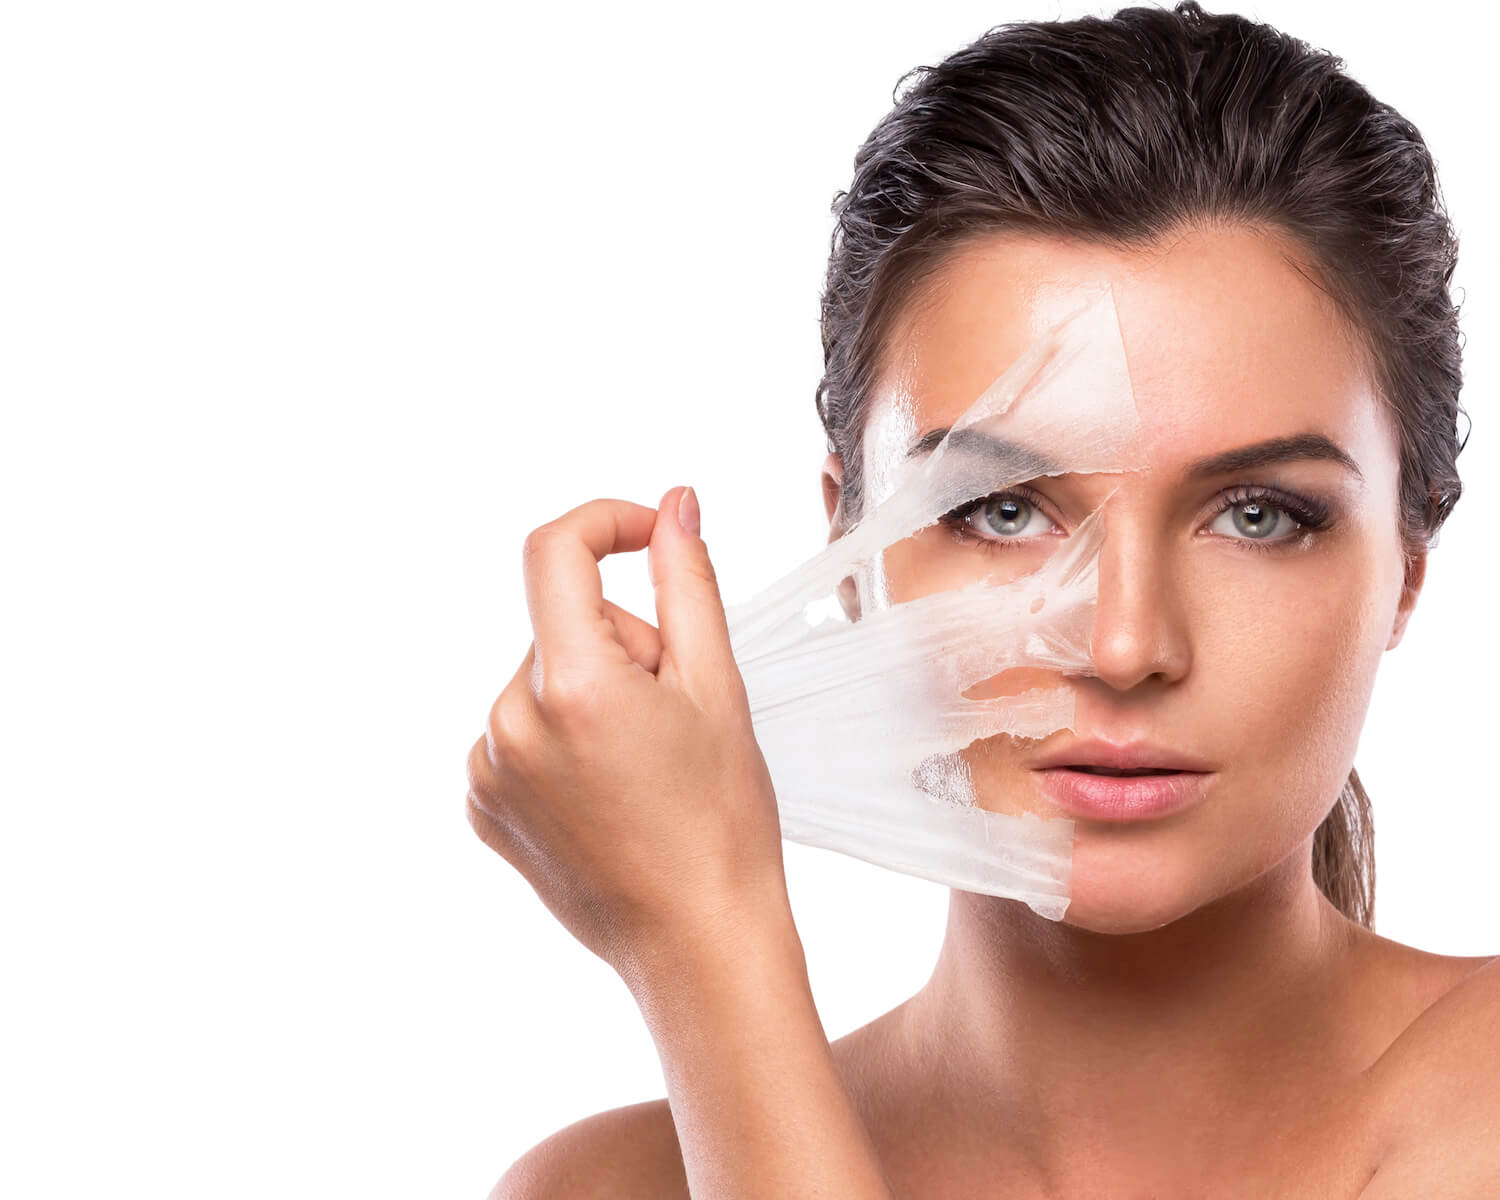 young woman pulling off chemical peel from face, rejuvenating skin